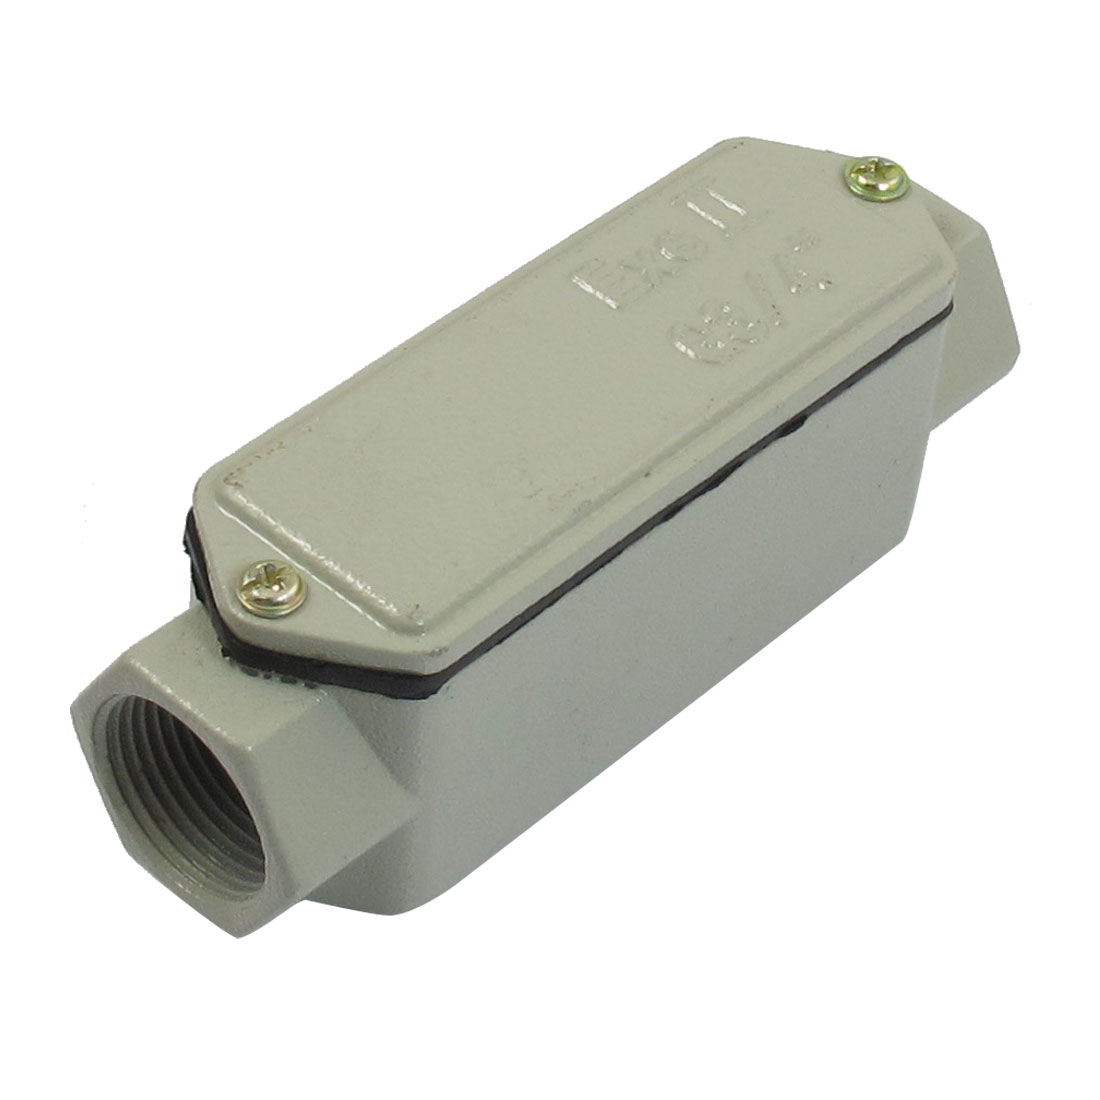 G3-4-Metal-2-Hole-Linear-Explosion-proof-Conduit-Outlet-Box-Fnpwx